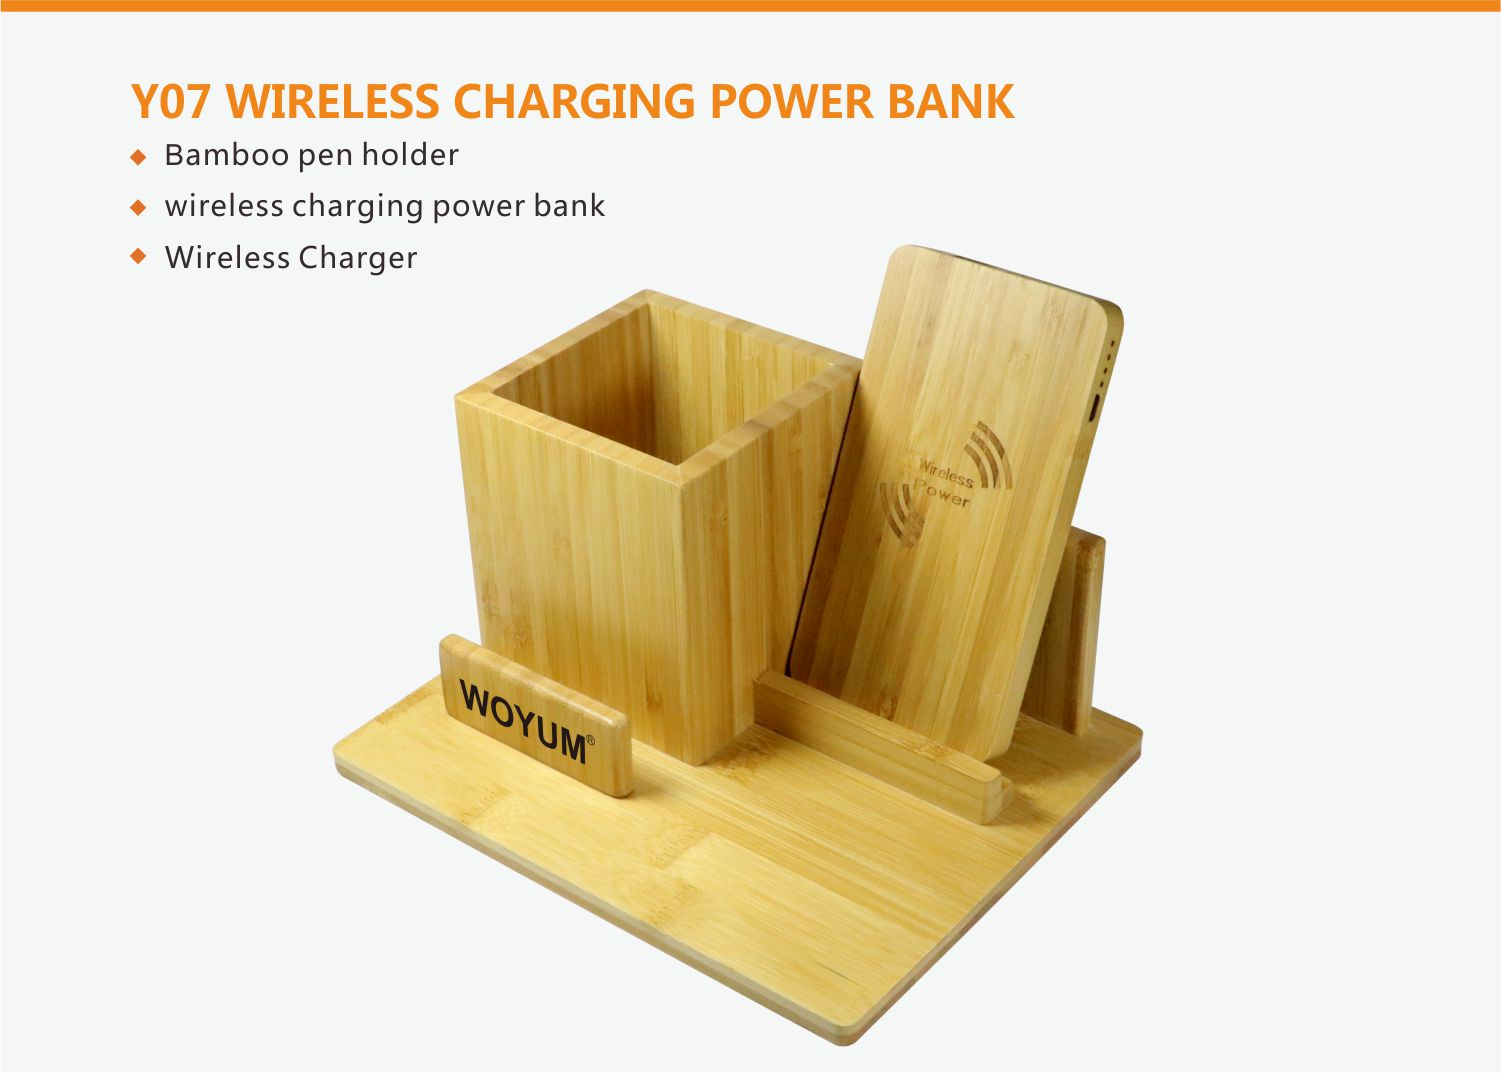 video-bamboo wood qi wireless charger wood power bank with Pen container-Woyum -img